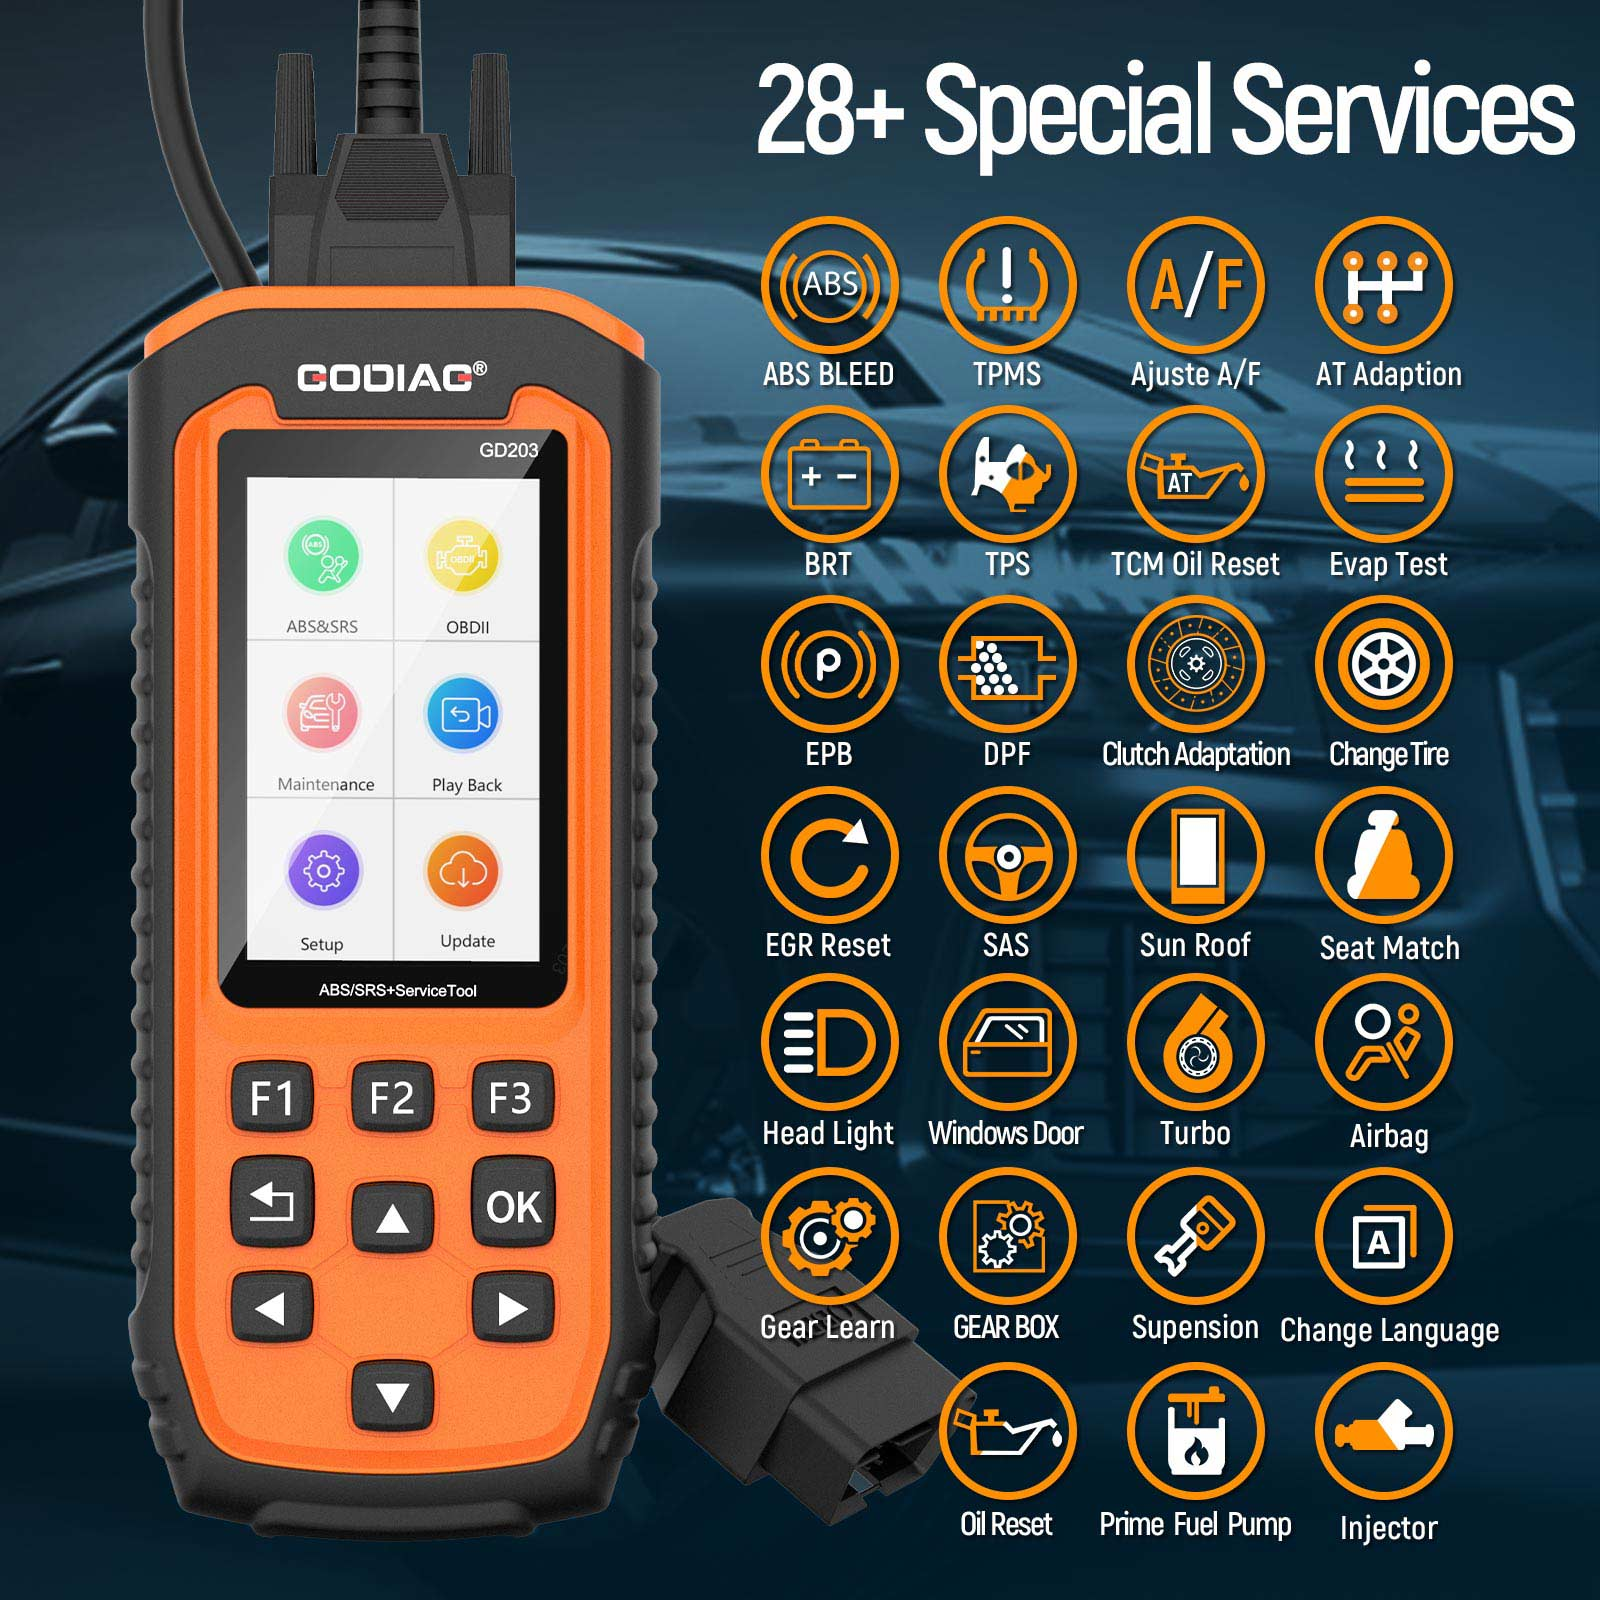 gd203 special services